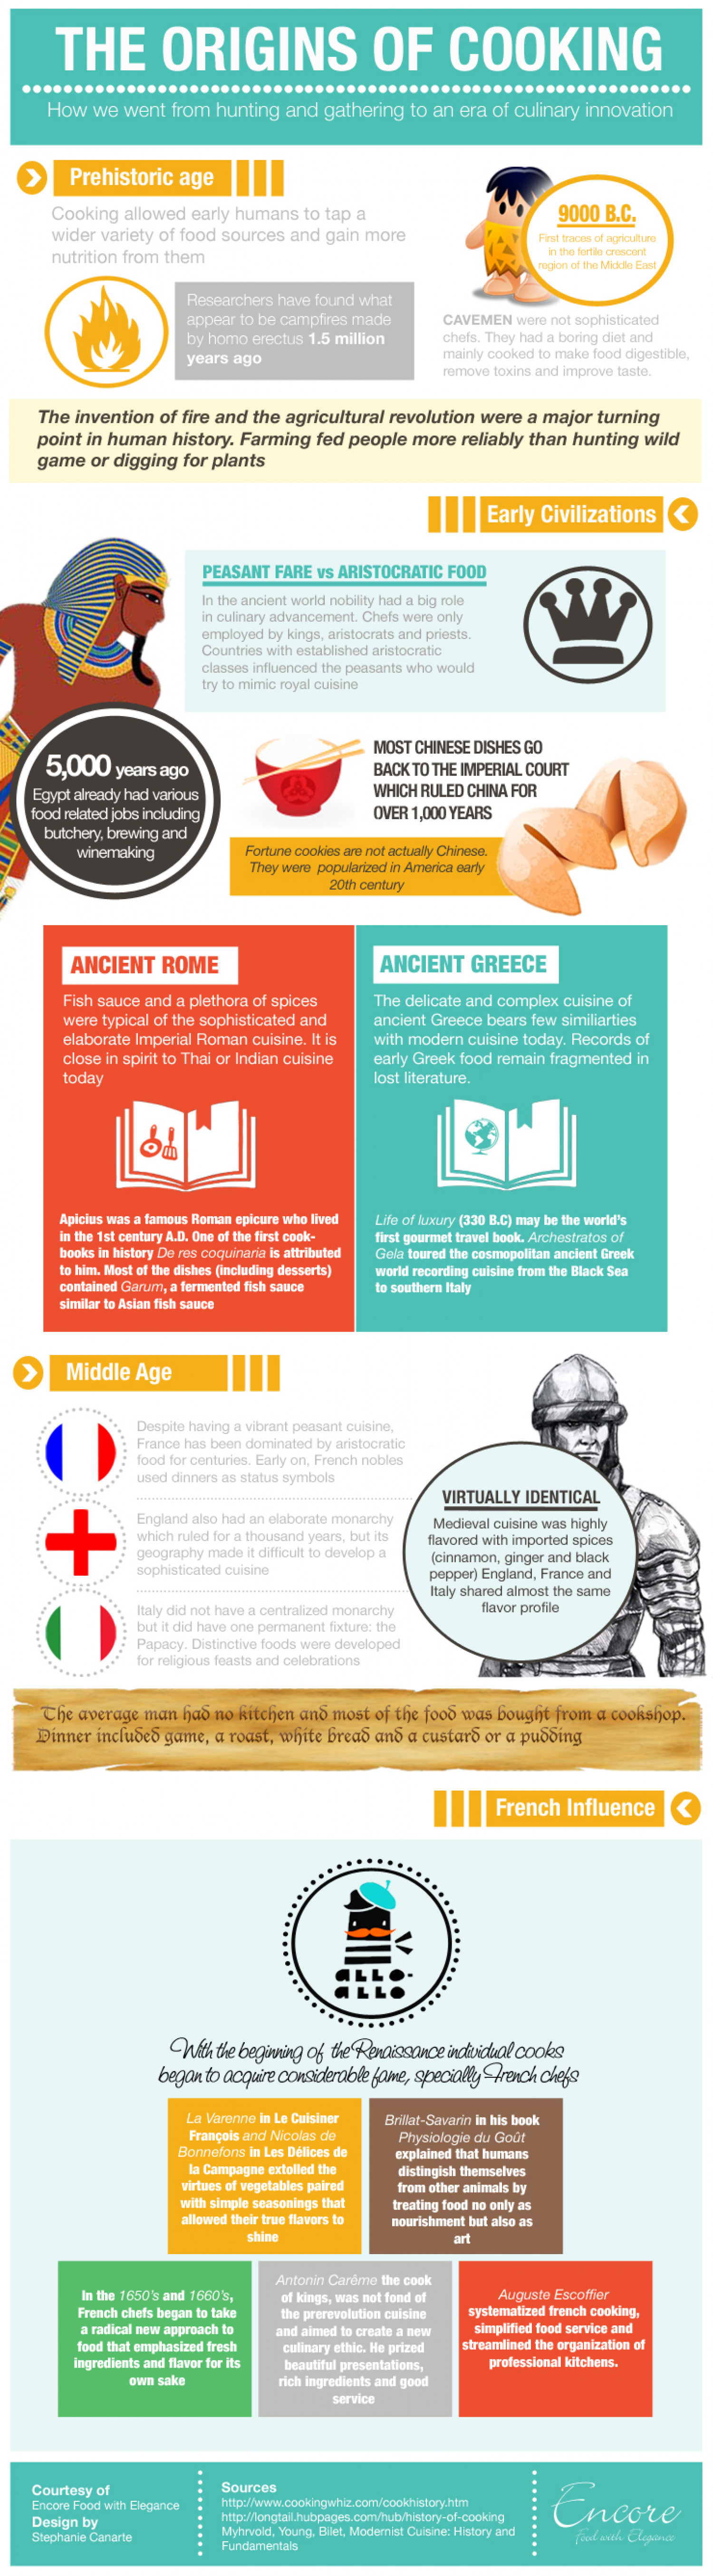 The Origins of Cooking Infographic